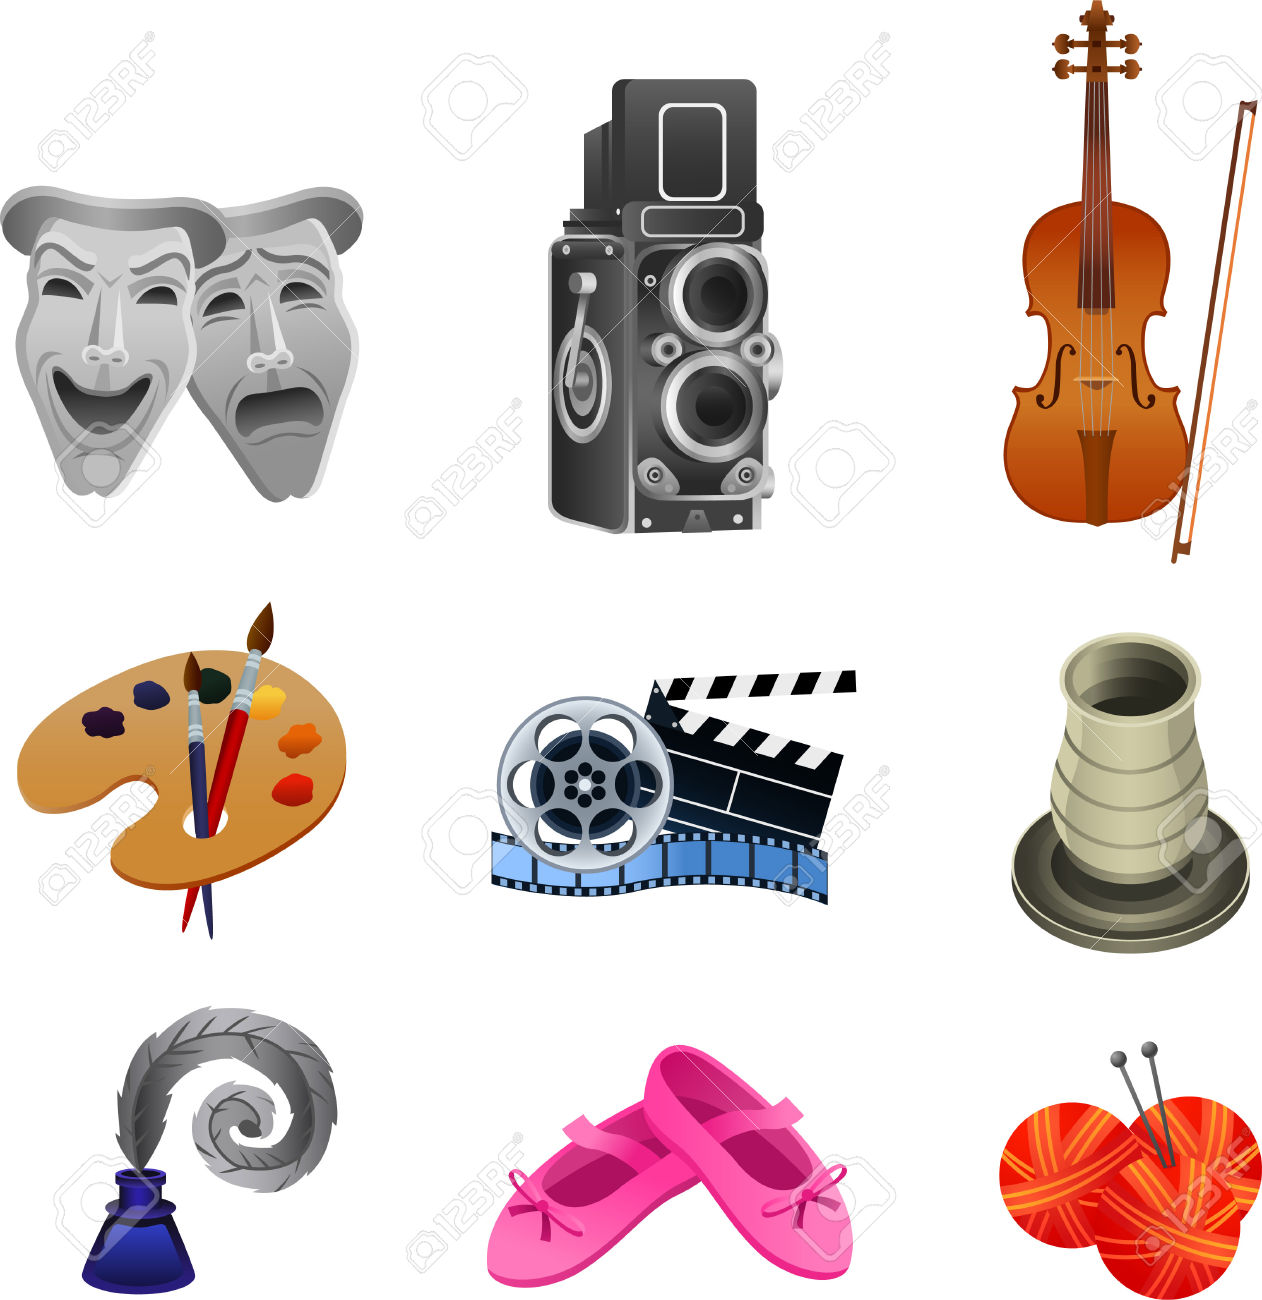 Arts Icon Collection, With Theater Masks, Theater, Concert, Violin.